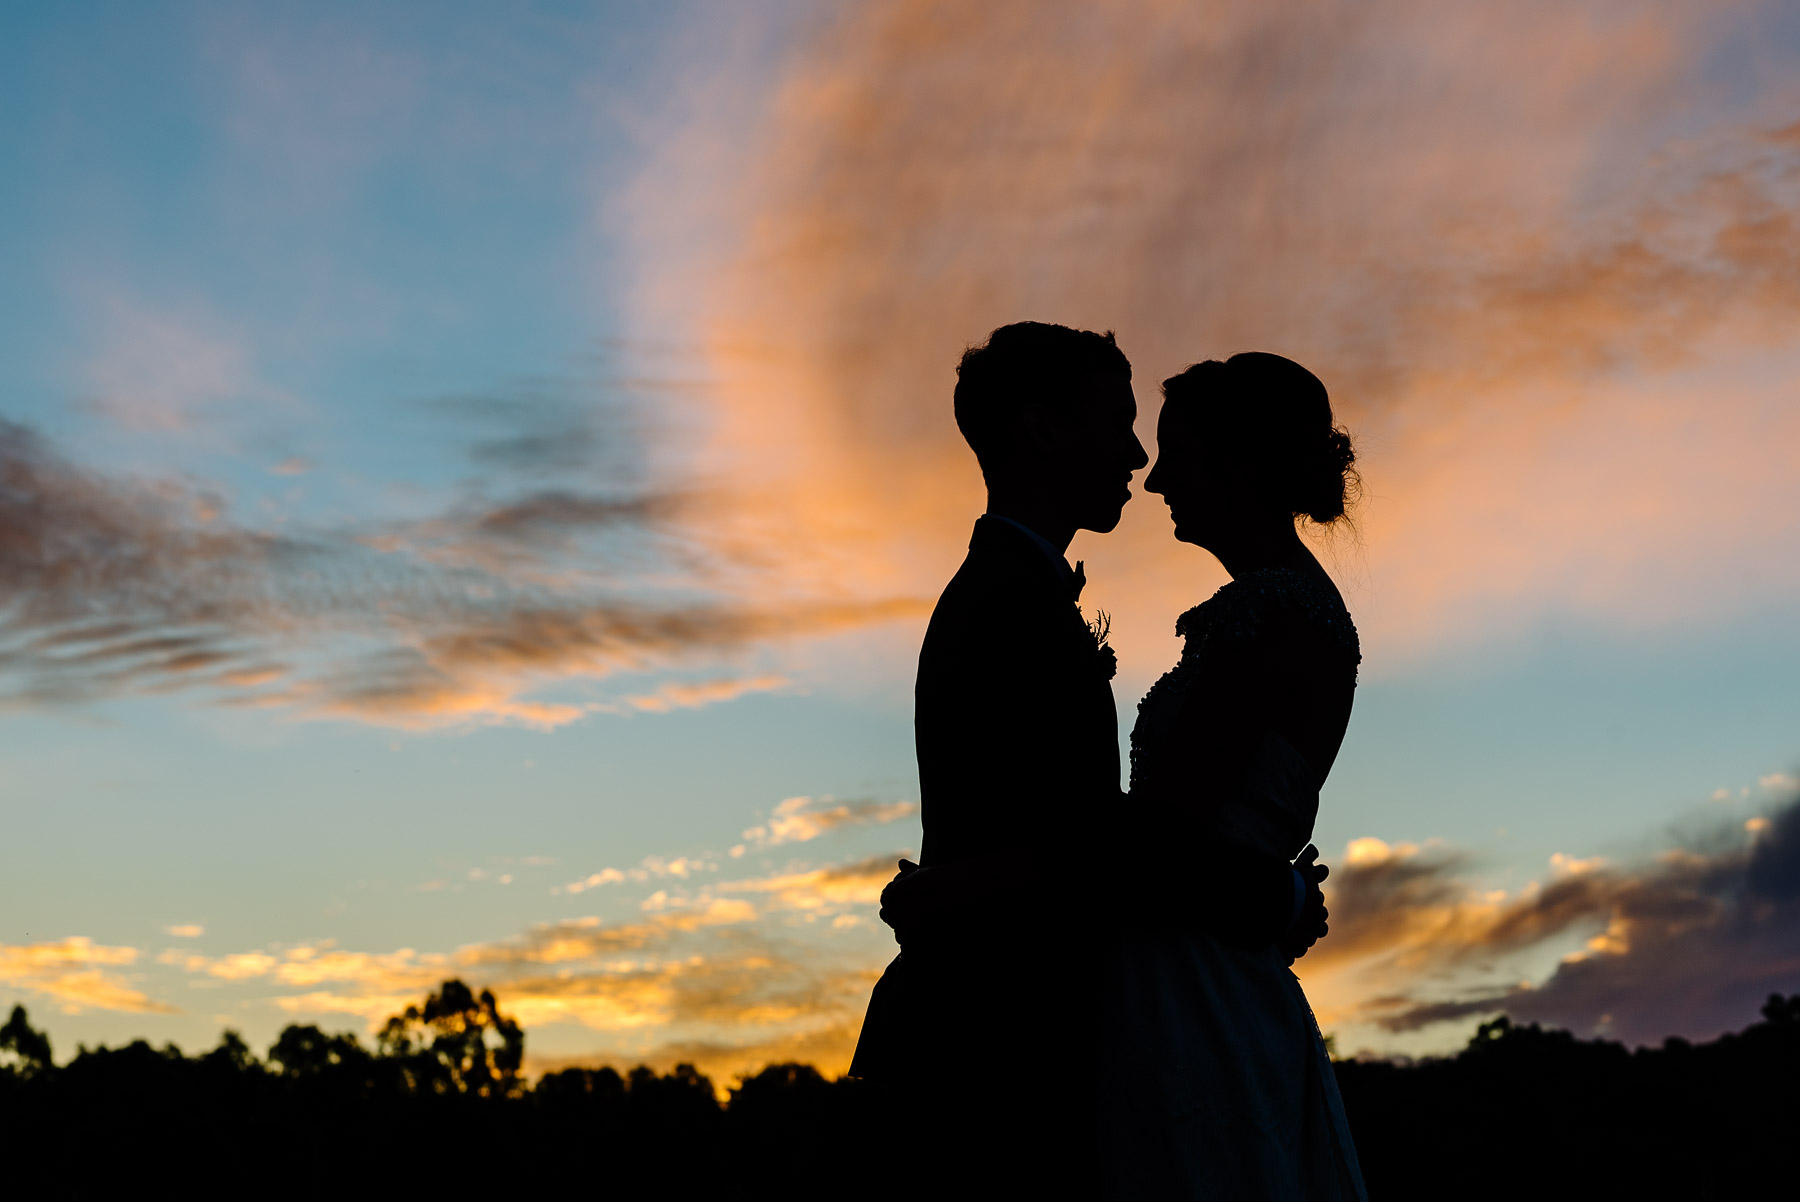 Justin_and_Jim_Best_Of_Wedding_Photography-55.jpg